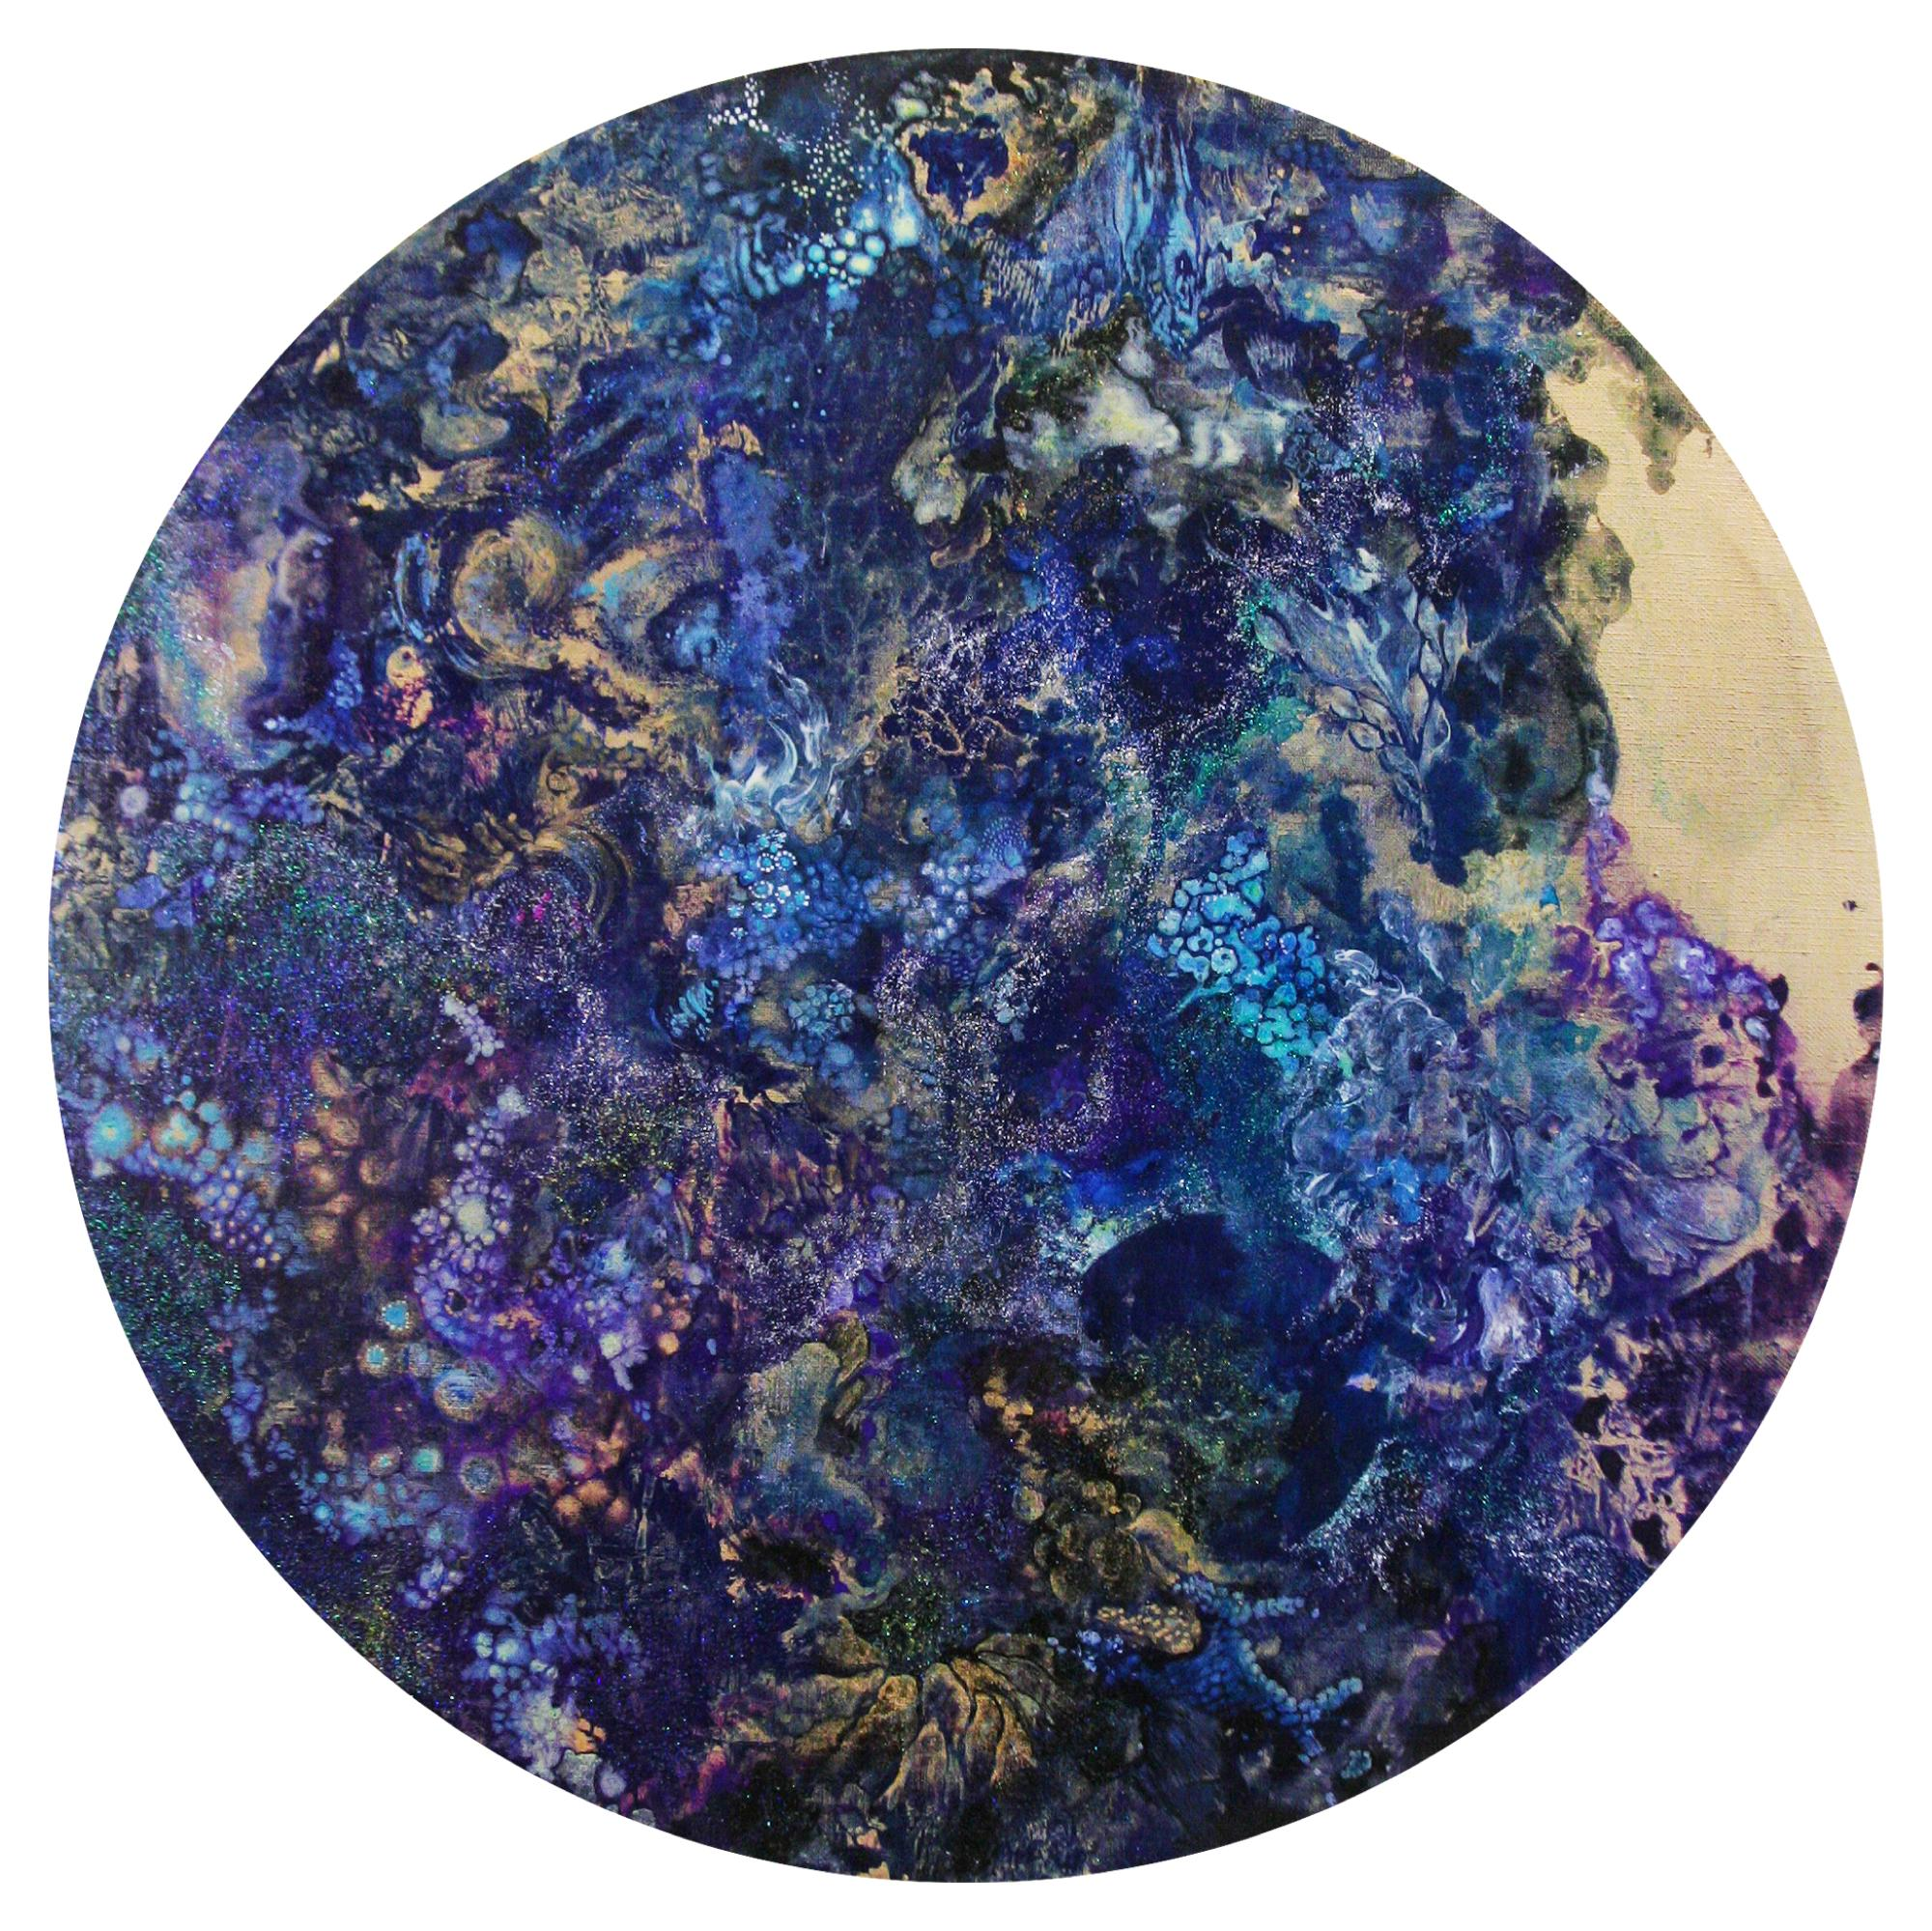 Microcosmos shan shui  2014  Acrylic and Metal powder on canvas  53cm diameter